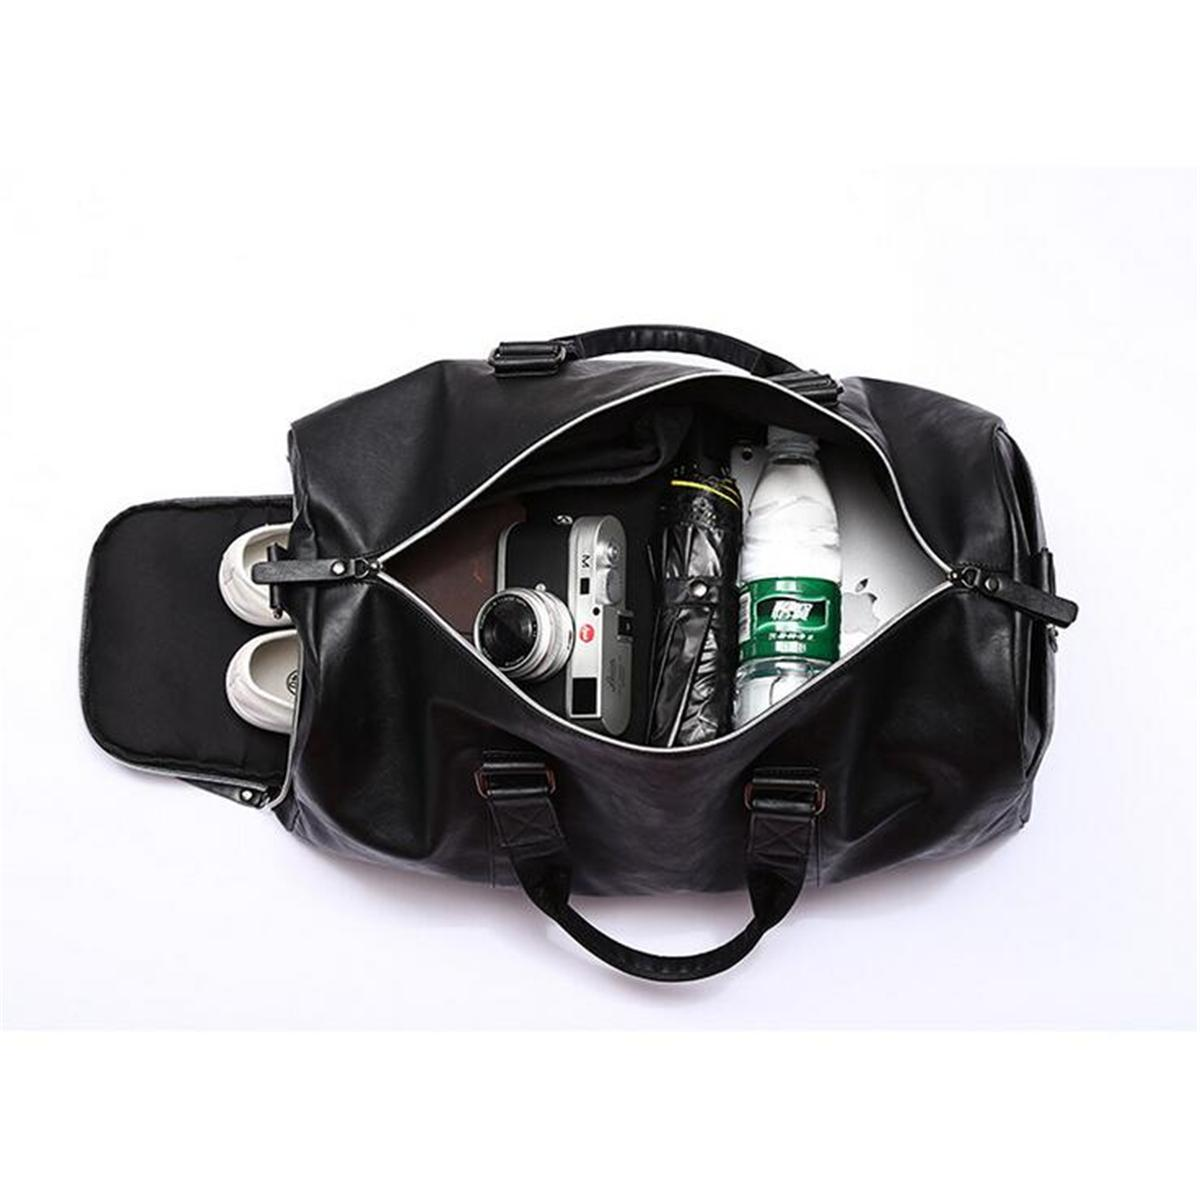 86839e46a5 AEQUEEN Black Men Travel Duffle Bags Waterproof PU Leather Handbags  Shoulder Bag For Women Man Totes Large Capacity Weekend Bag-in Travel Bags  from Luggage ...